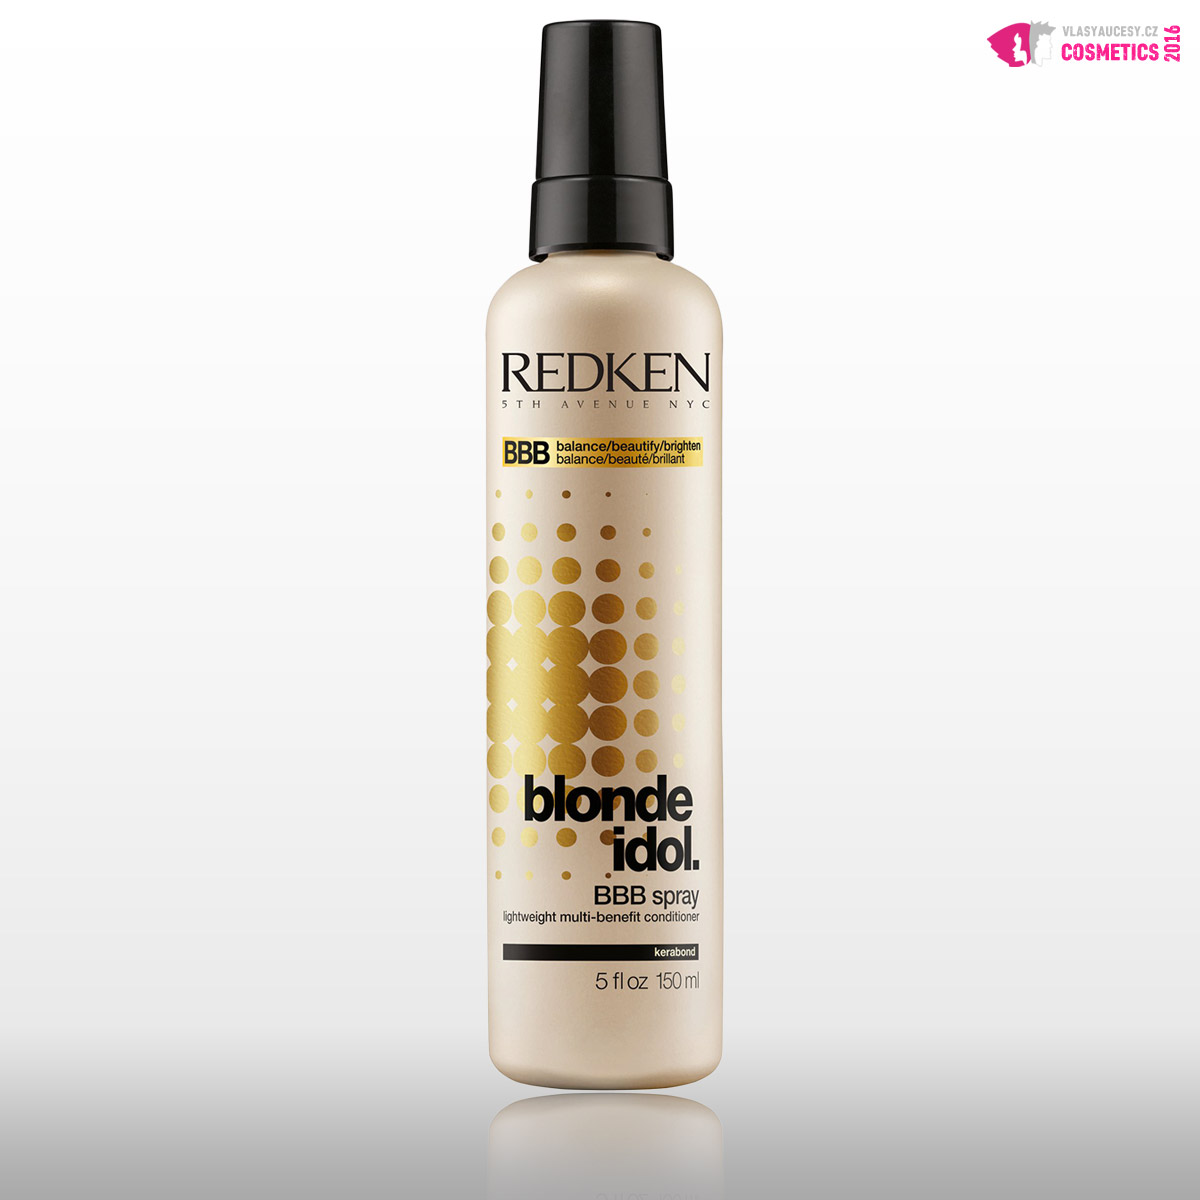 BBB Spray od Redken z řady Blonde Idol